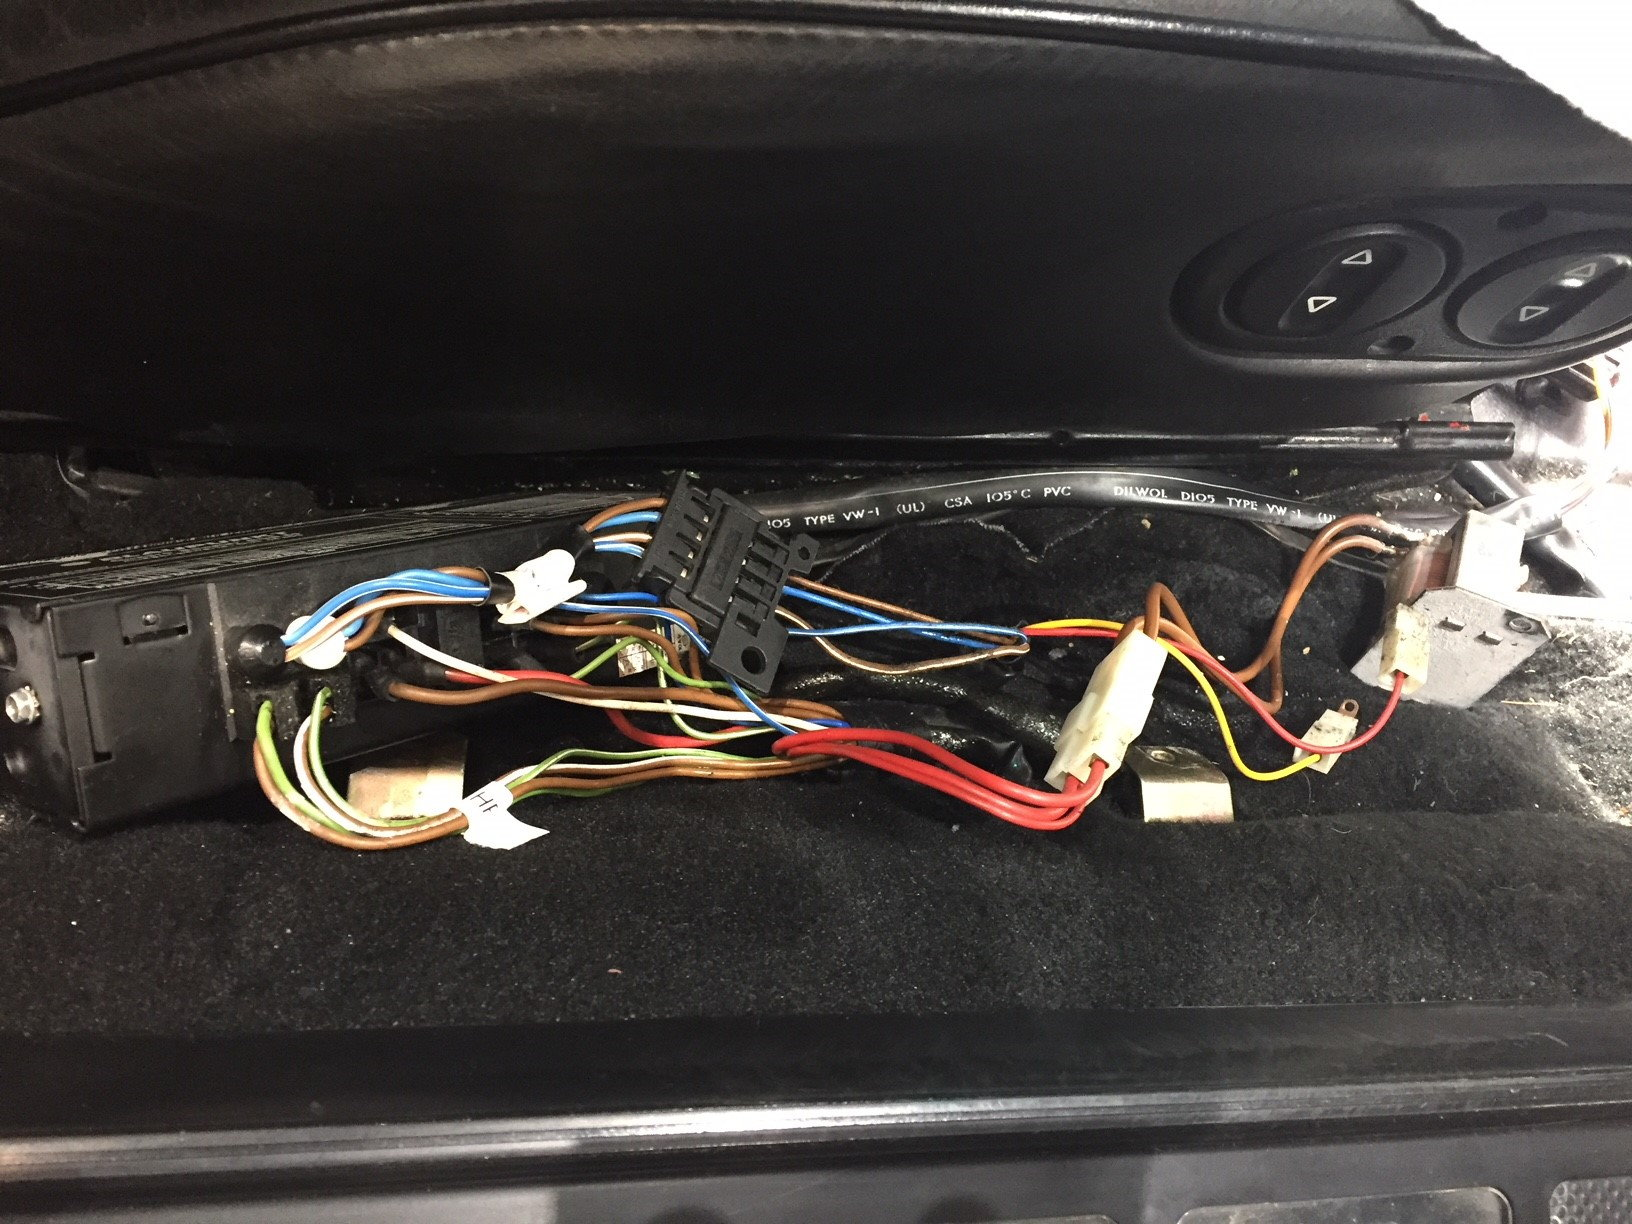 19865 928s Radio Wiring Experts Help Please Rennlist Porsche Aftermarket Power Antenna Diagram With Toggle Switch Thanks In Advance For Any